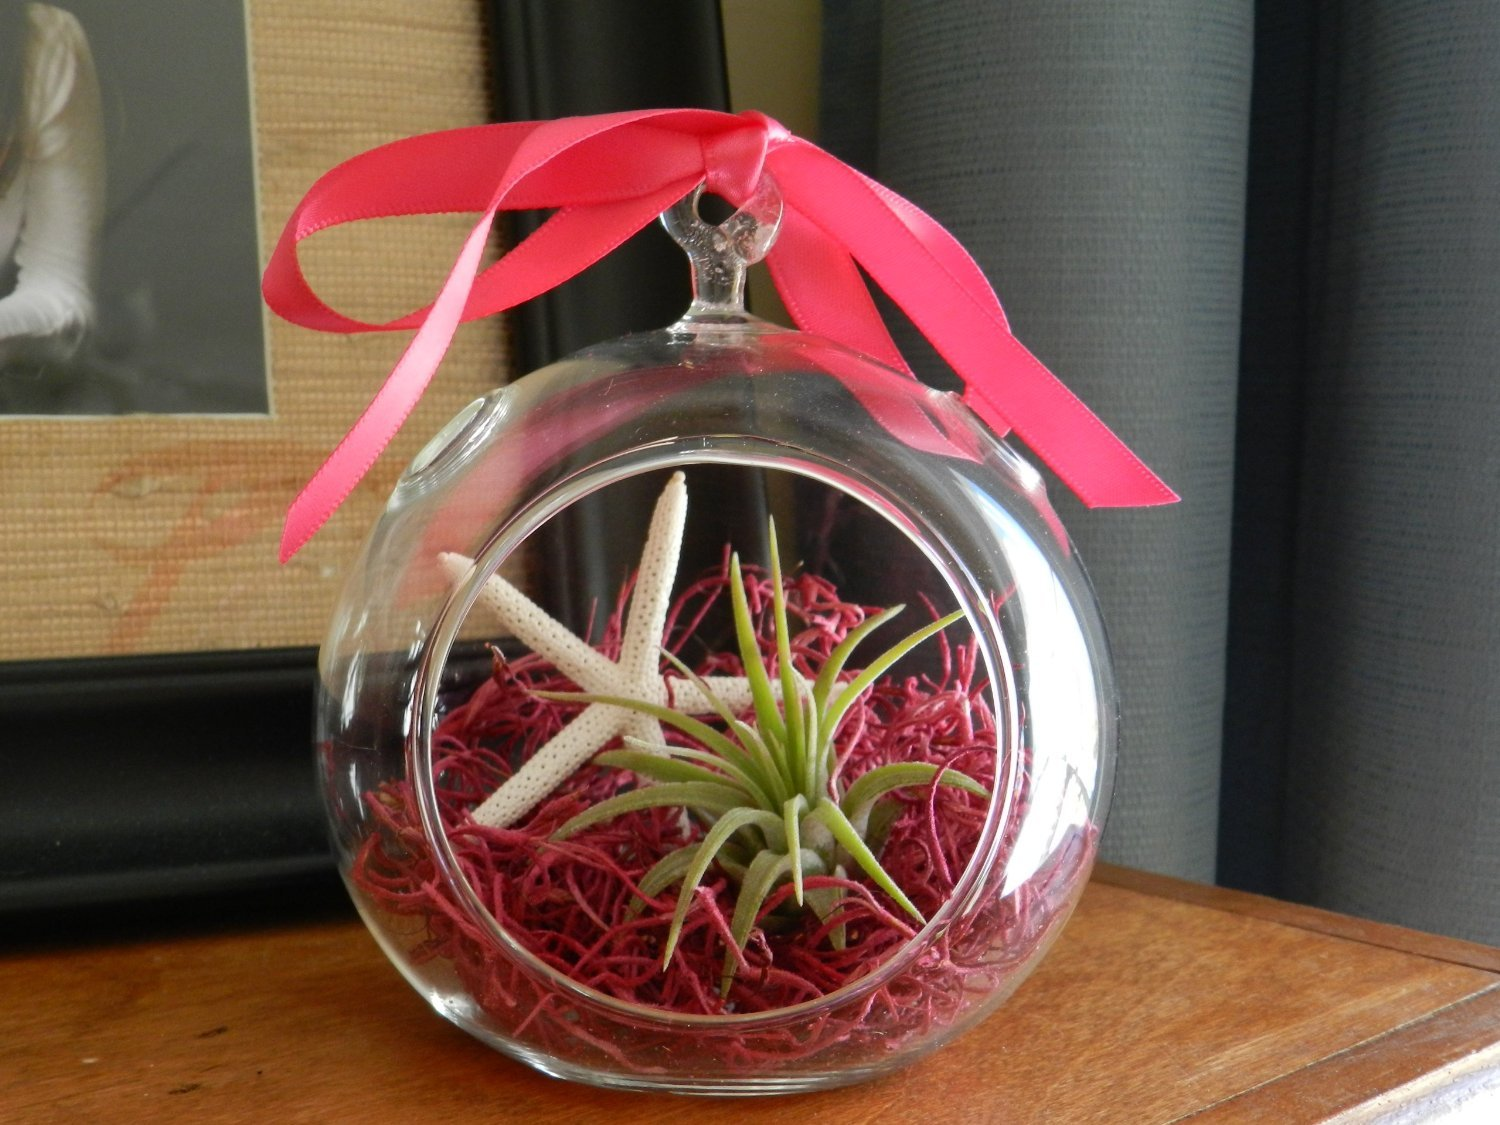 Amazon hinterland trading valentines day gift air plant amazon hinterland trading valentines day gift air plant tillandsia starfish glass hanging terrarium beautiful houseplant garden outdoor negle Choice Image